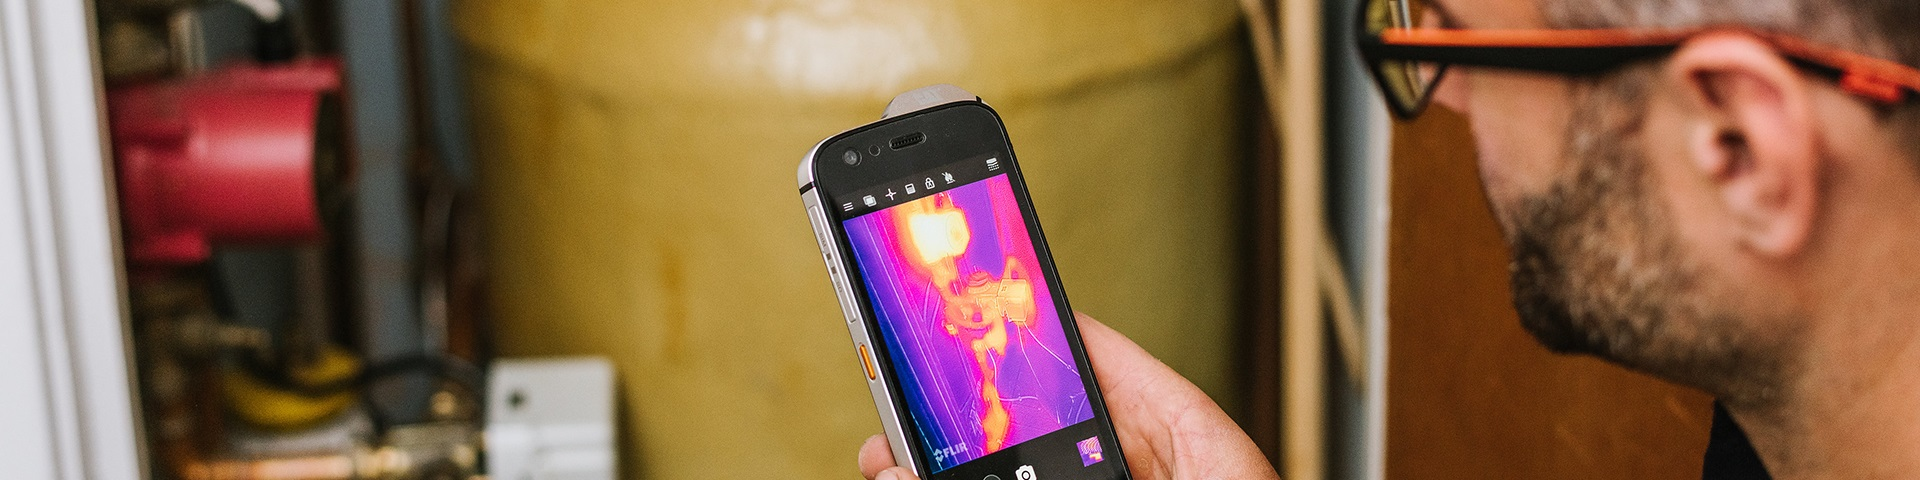 Using thermal imaging on the Cat S61 smartphone | Cat phones